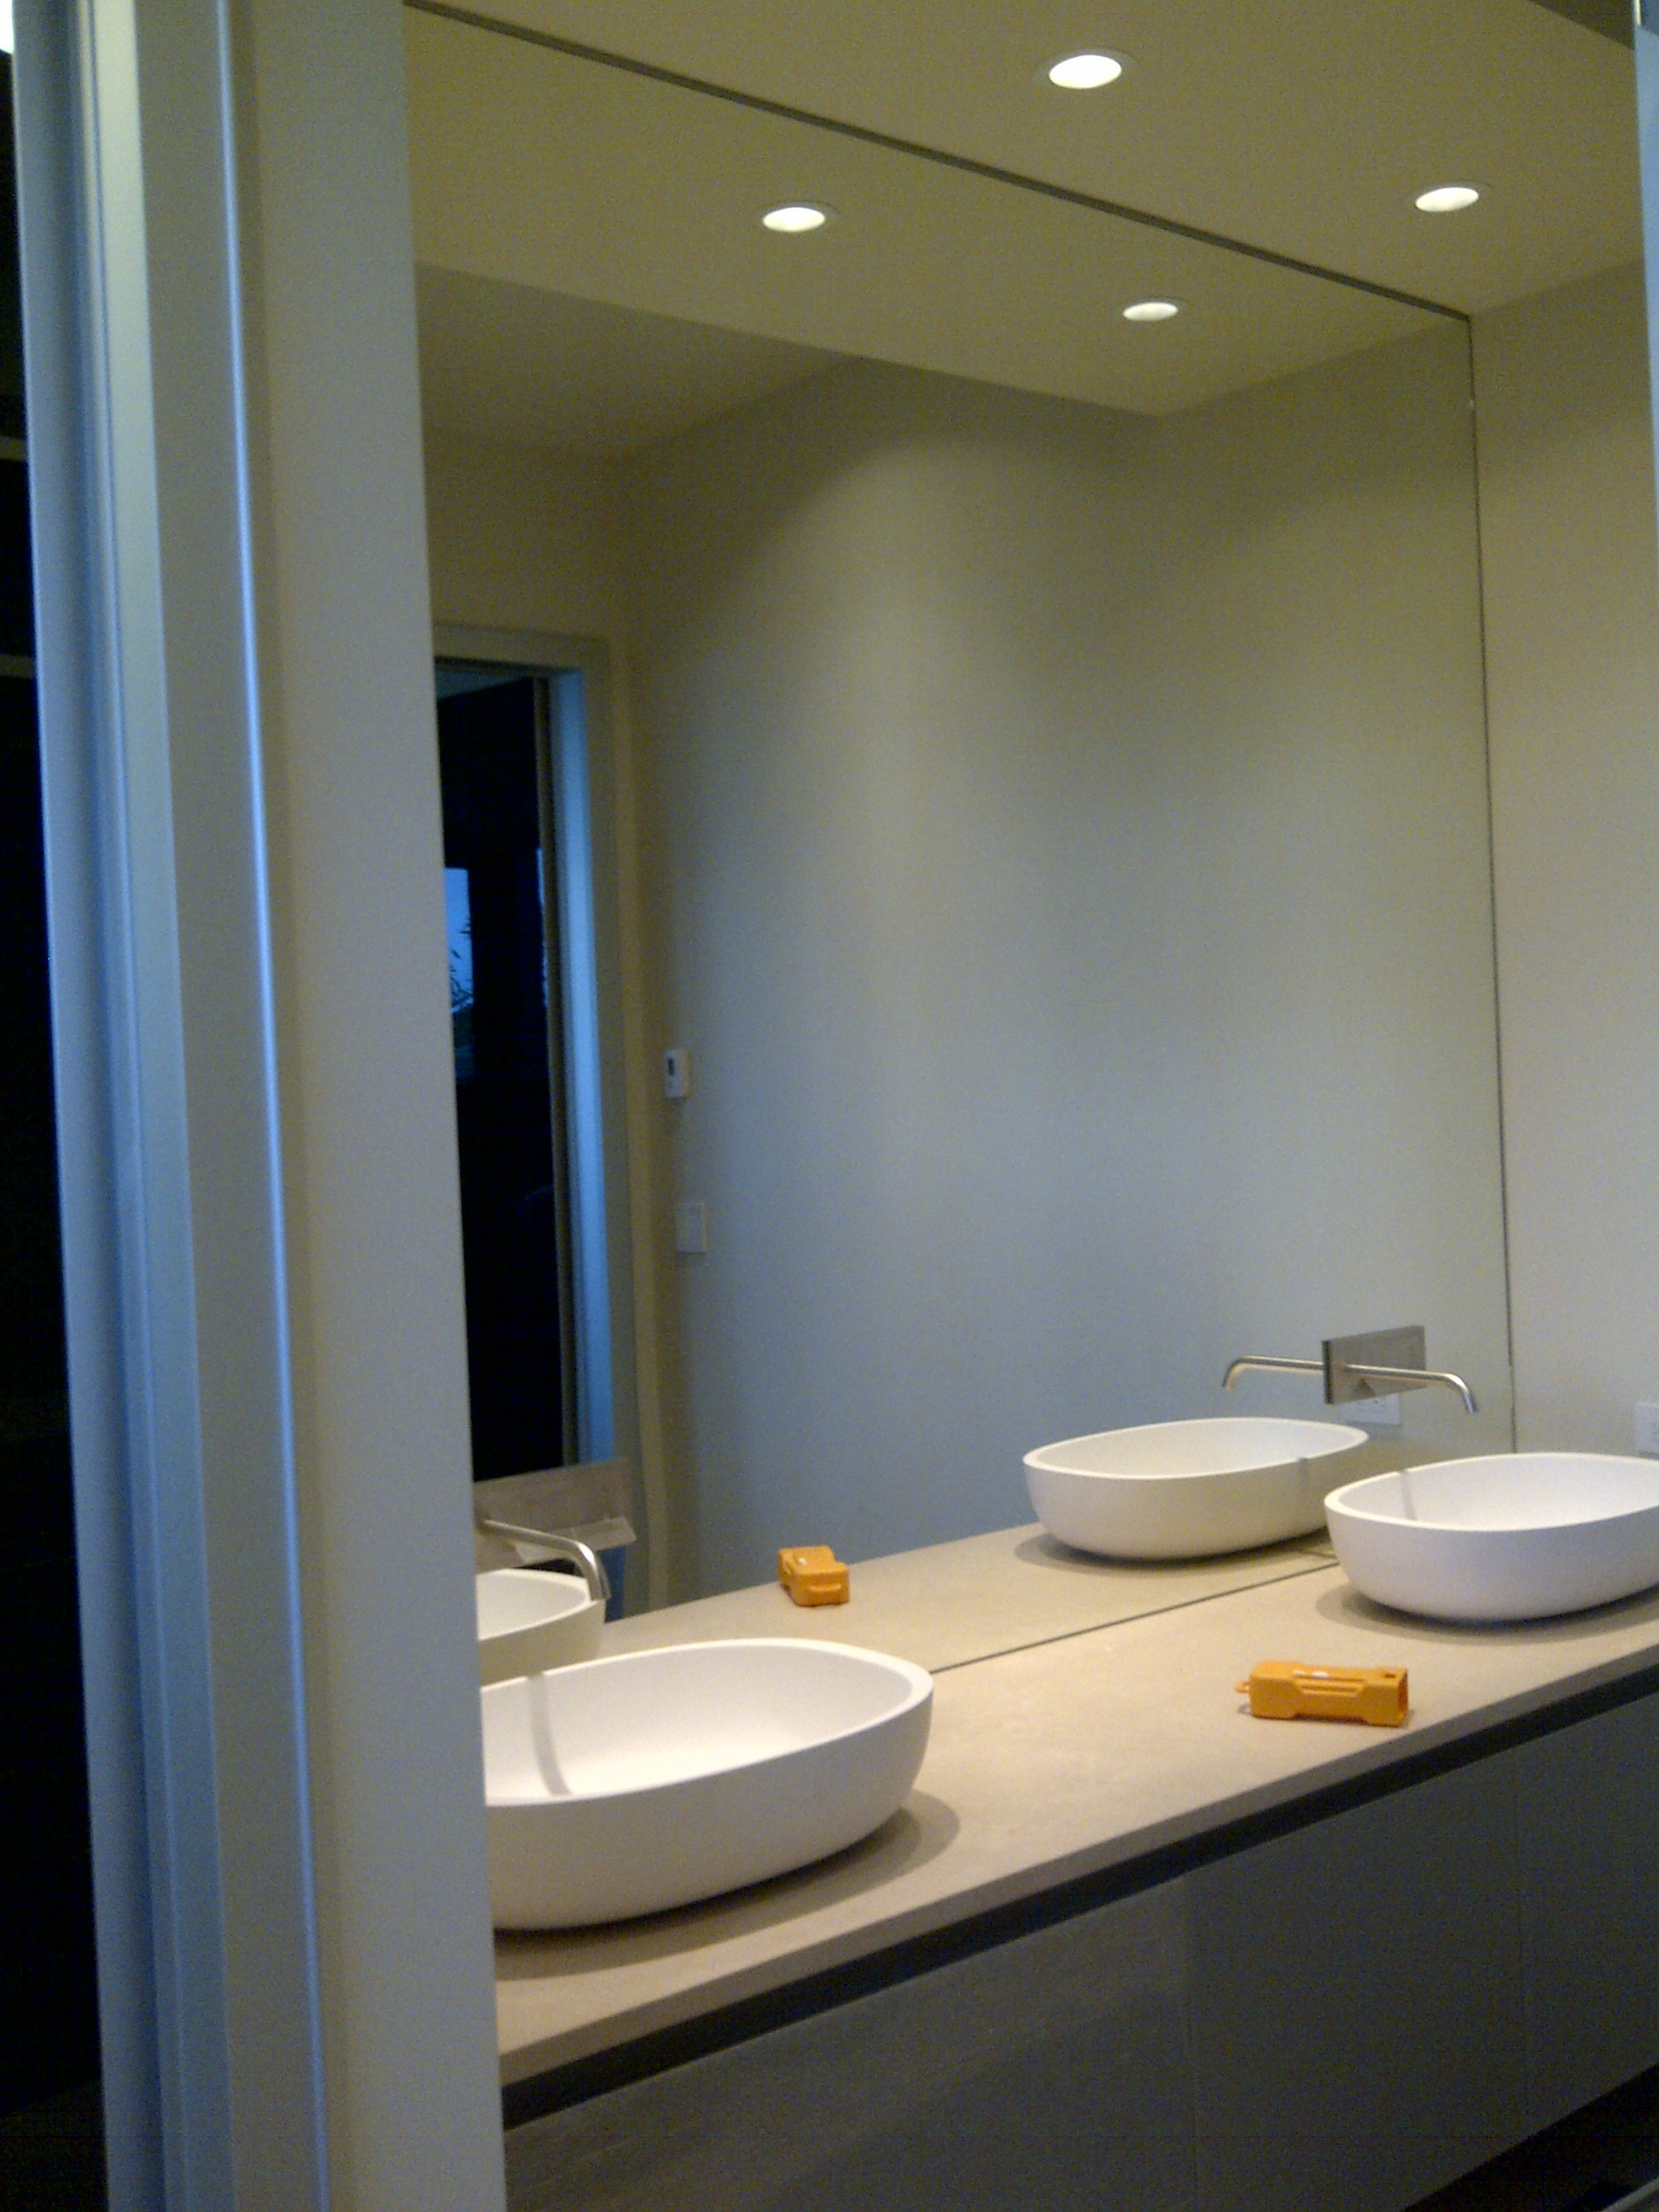 Mirrors repair replace and install in vancouver bc for Bathroom wall mirrors